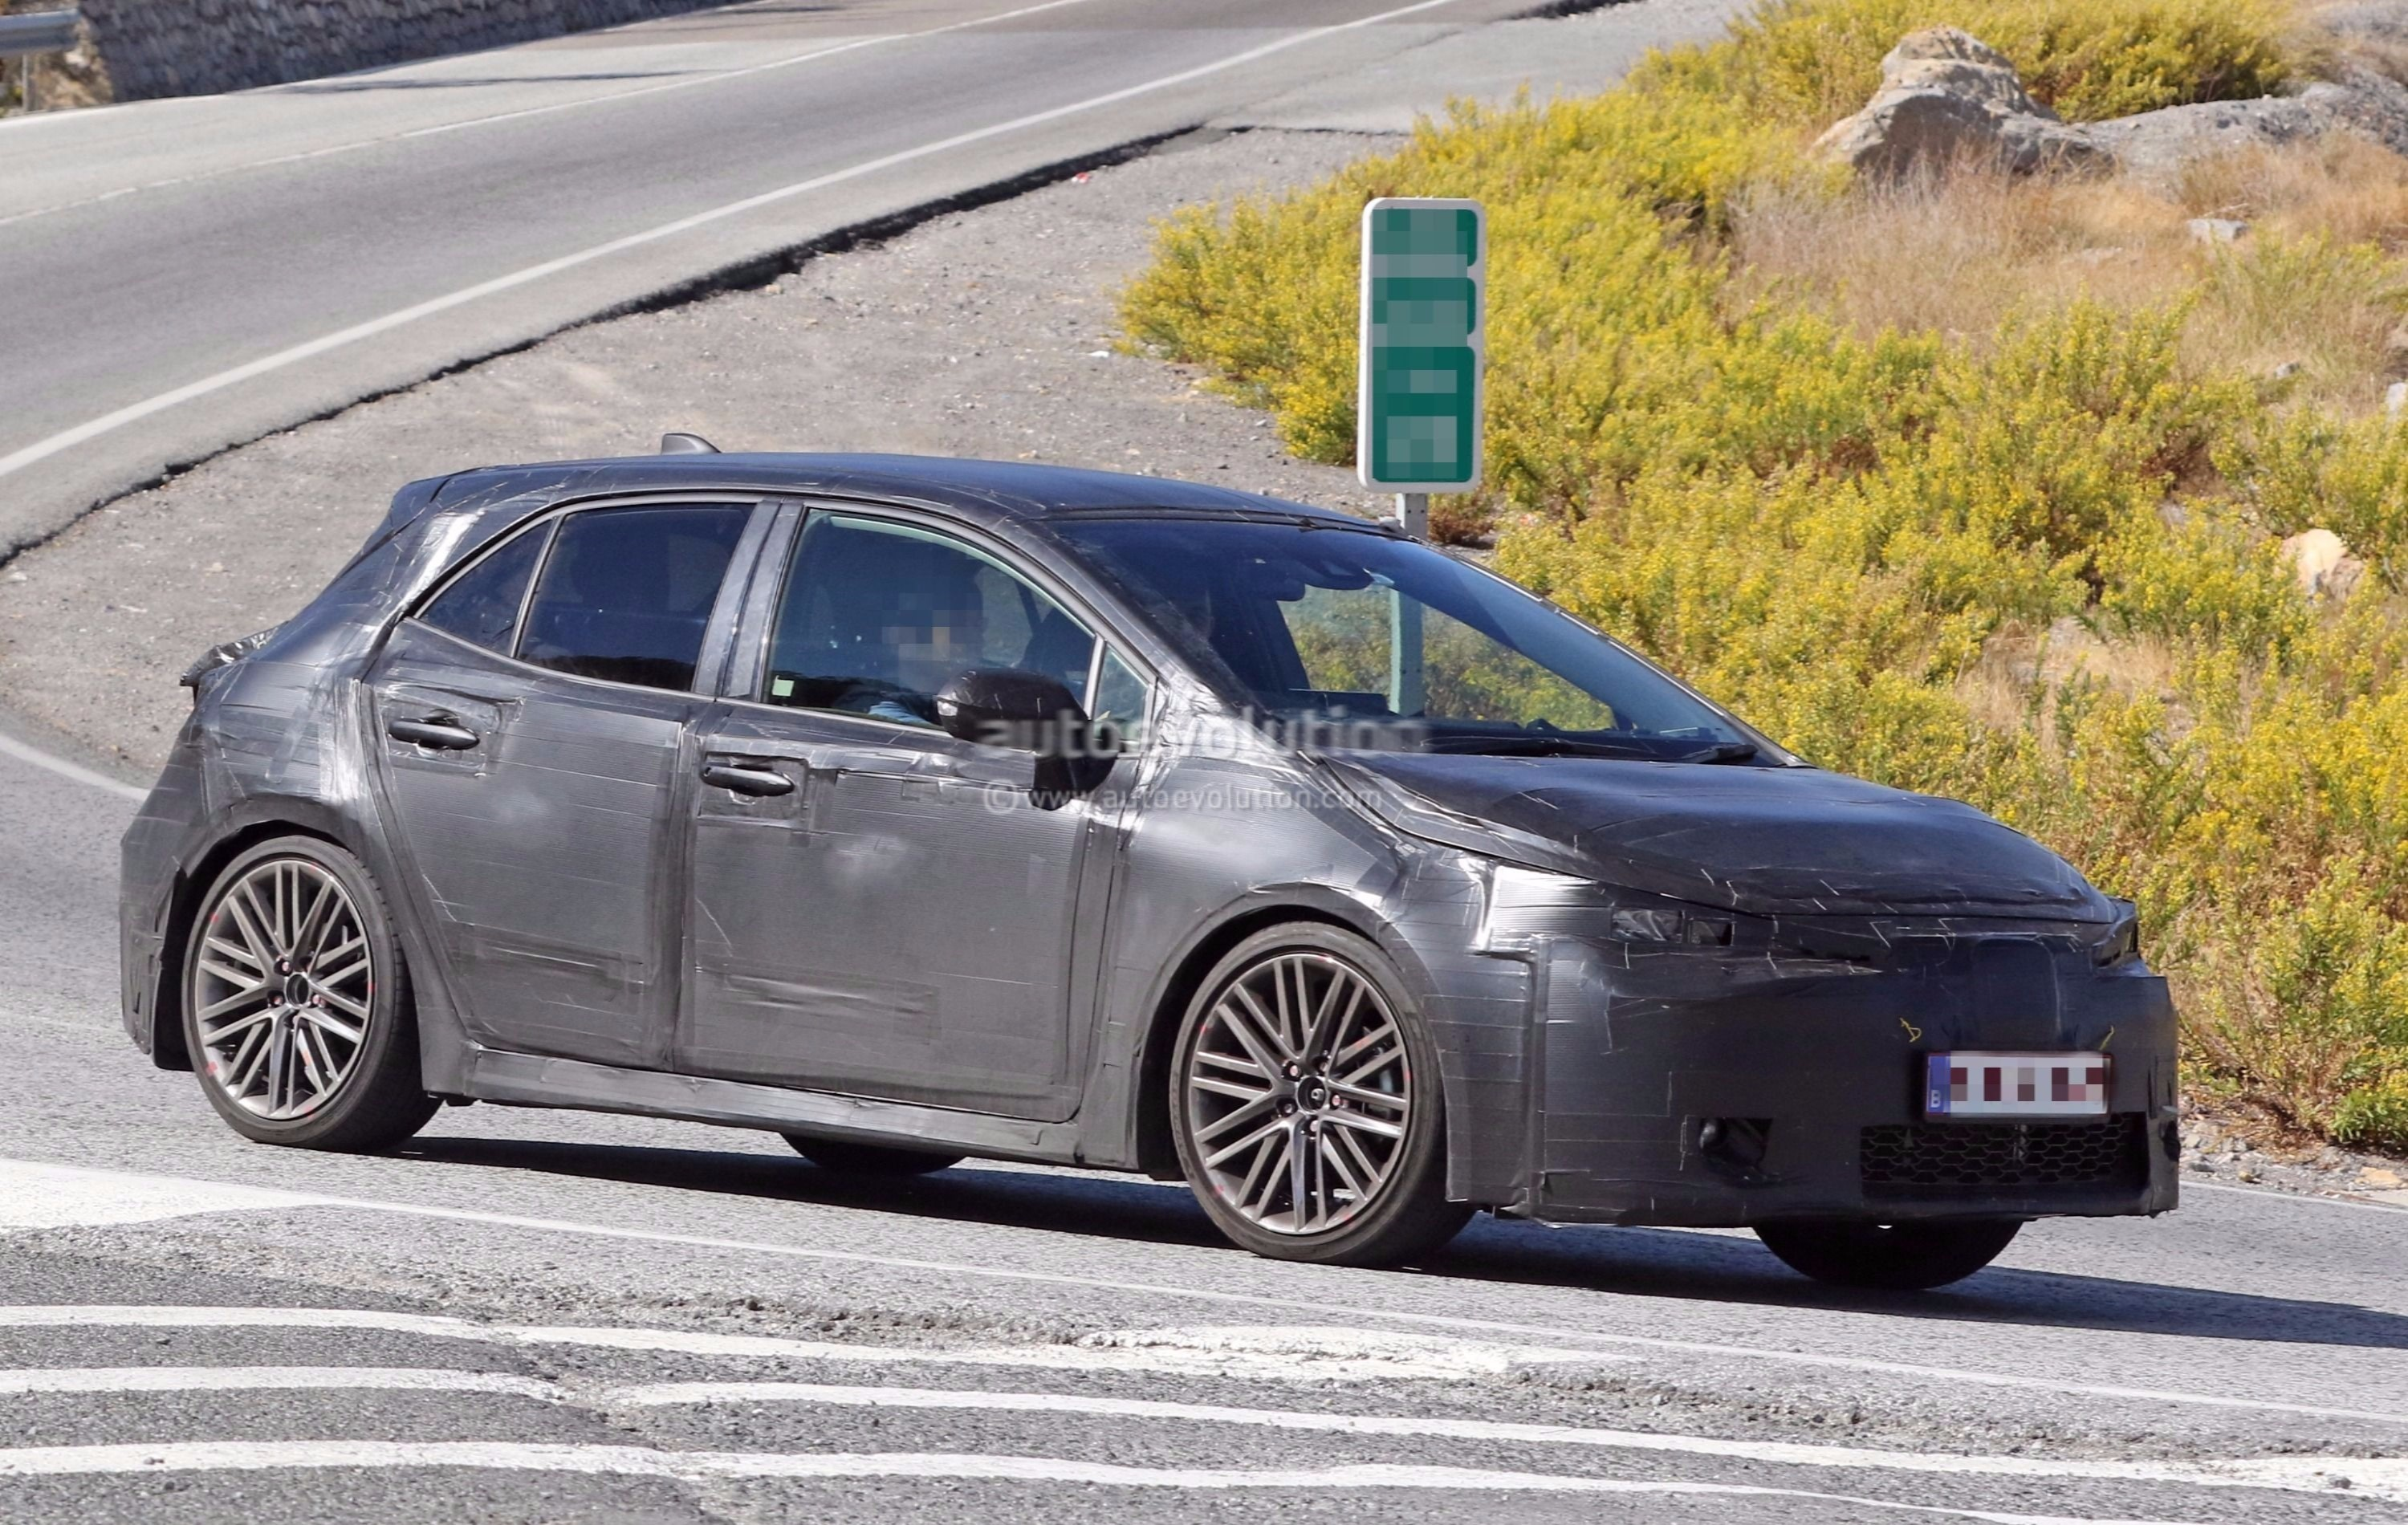 2019 toyota corolla hatchback im auris spied boasts production ready lights autoevolution. Black Bedroom Furniture Sets. Home Design Ideas